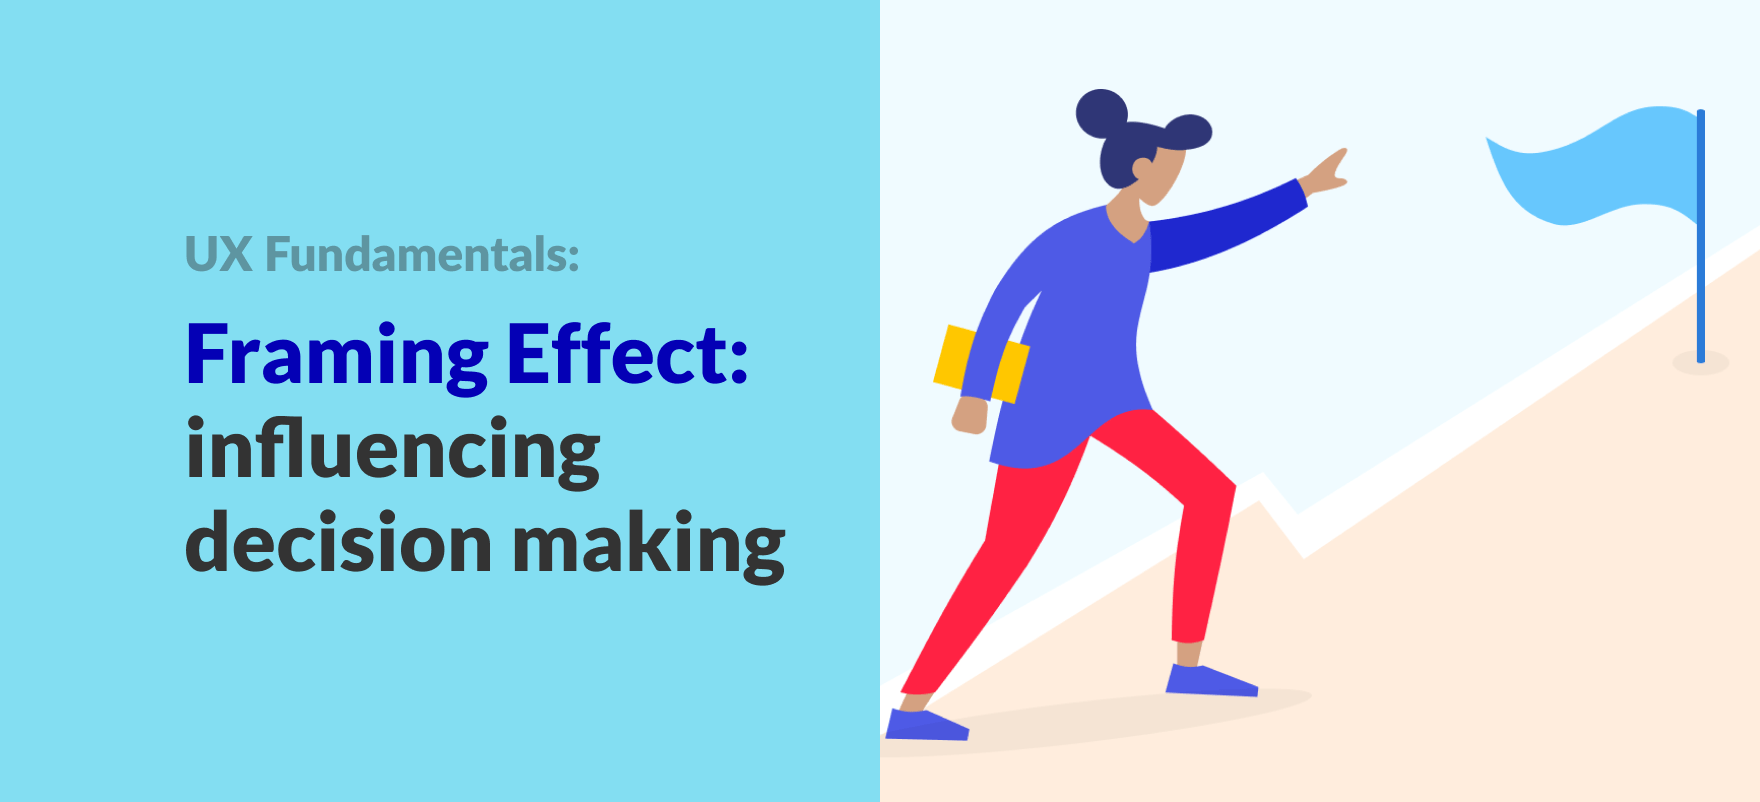 framing effect article banner